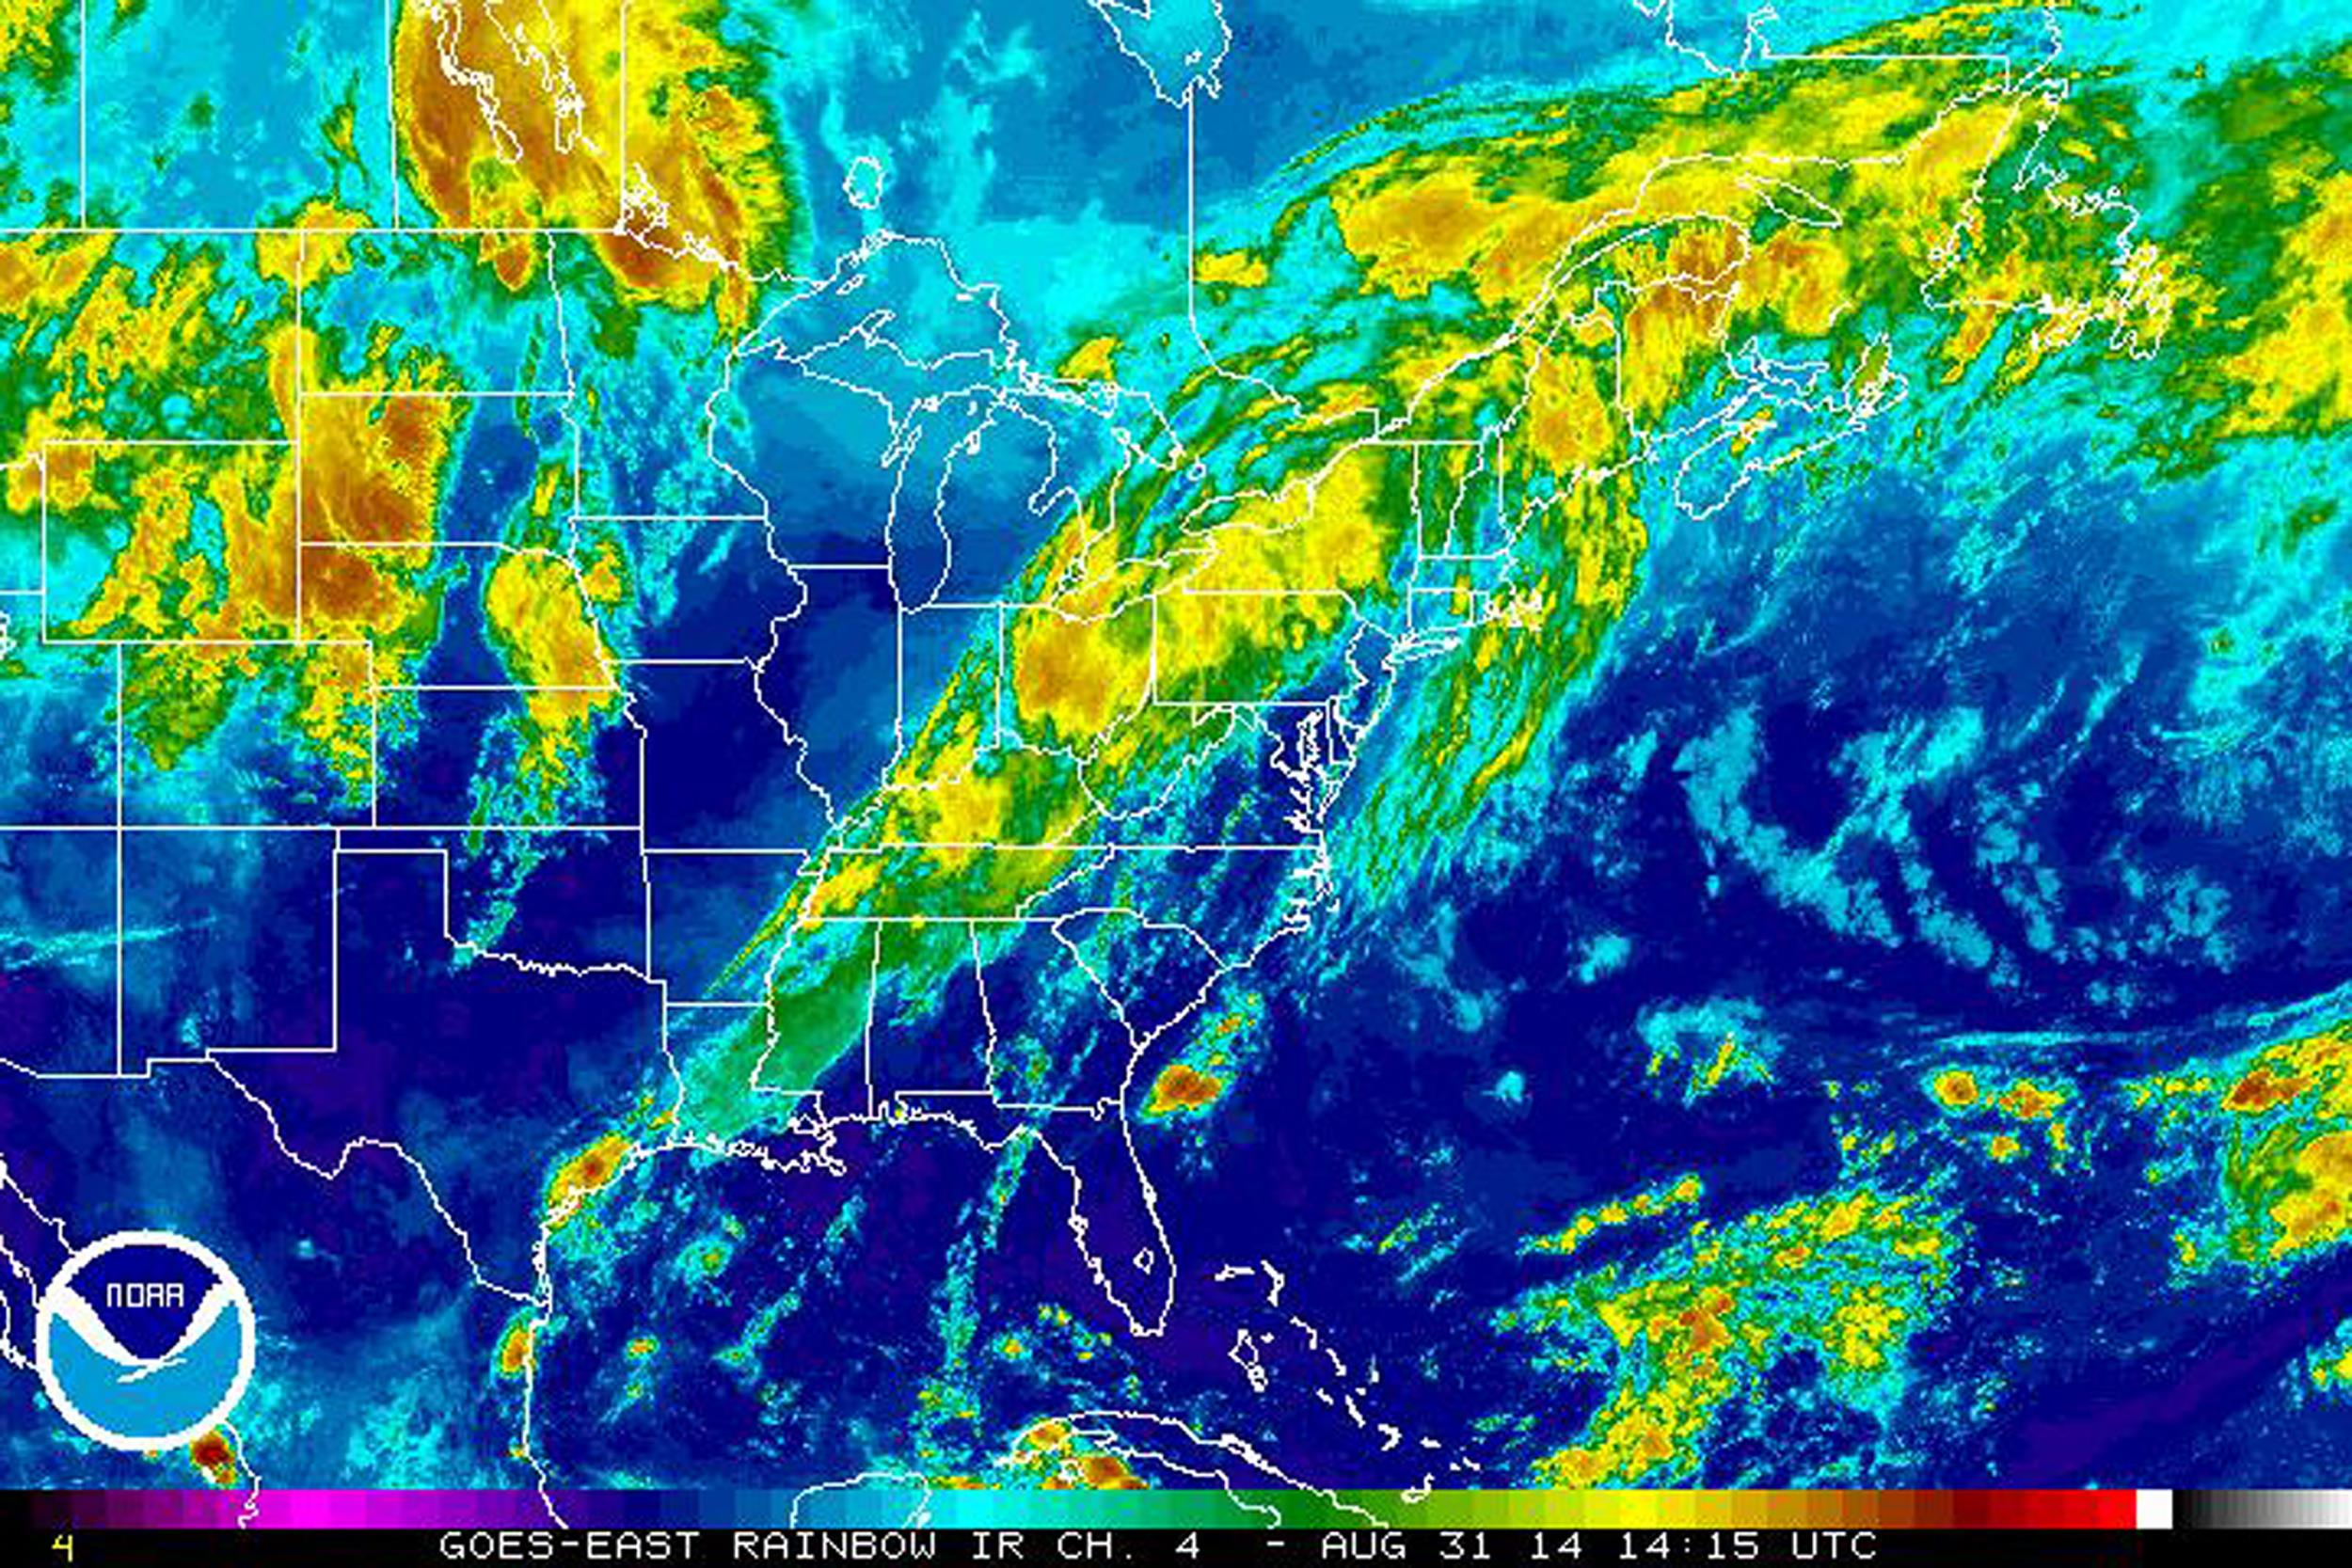 Satellite view of weather conditions on Aug. 31.